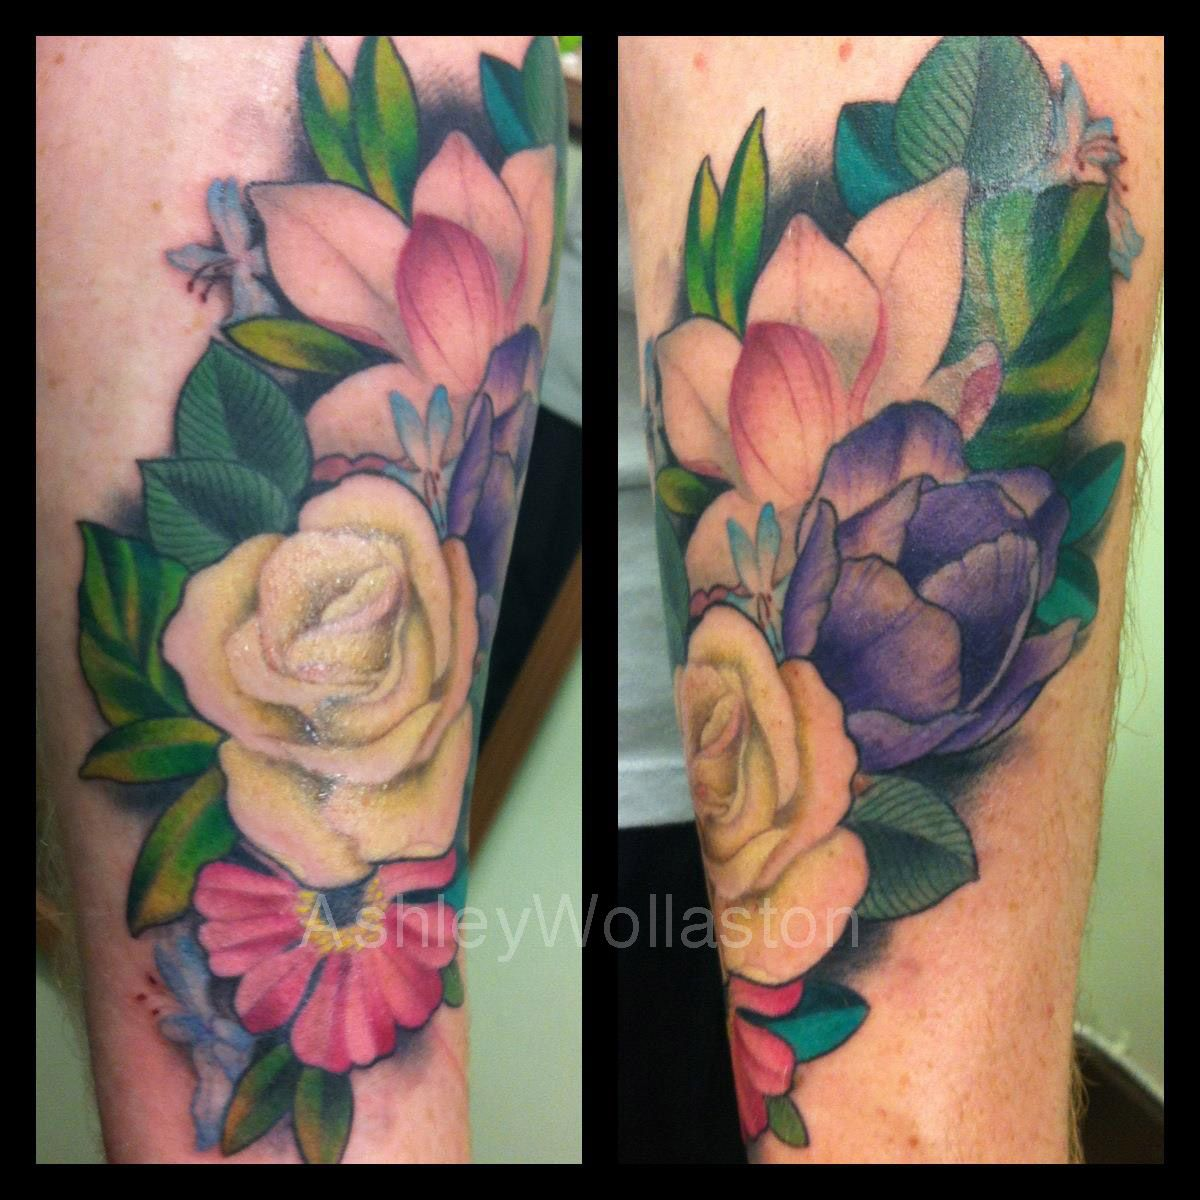 Ashley wollaston super genius tattoo seattle wa color tattoo ashley wollaston super genius tattoo seattle wa color tattoo flowers roses izmirmasajfo